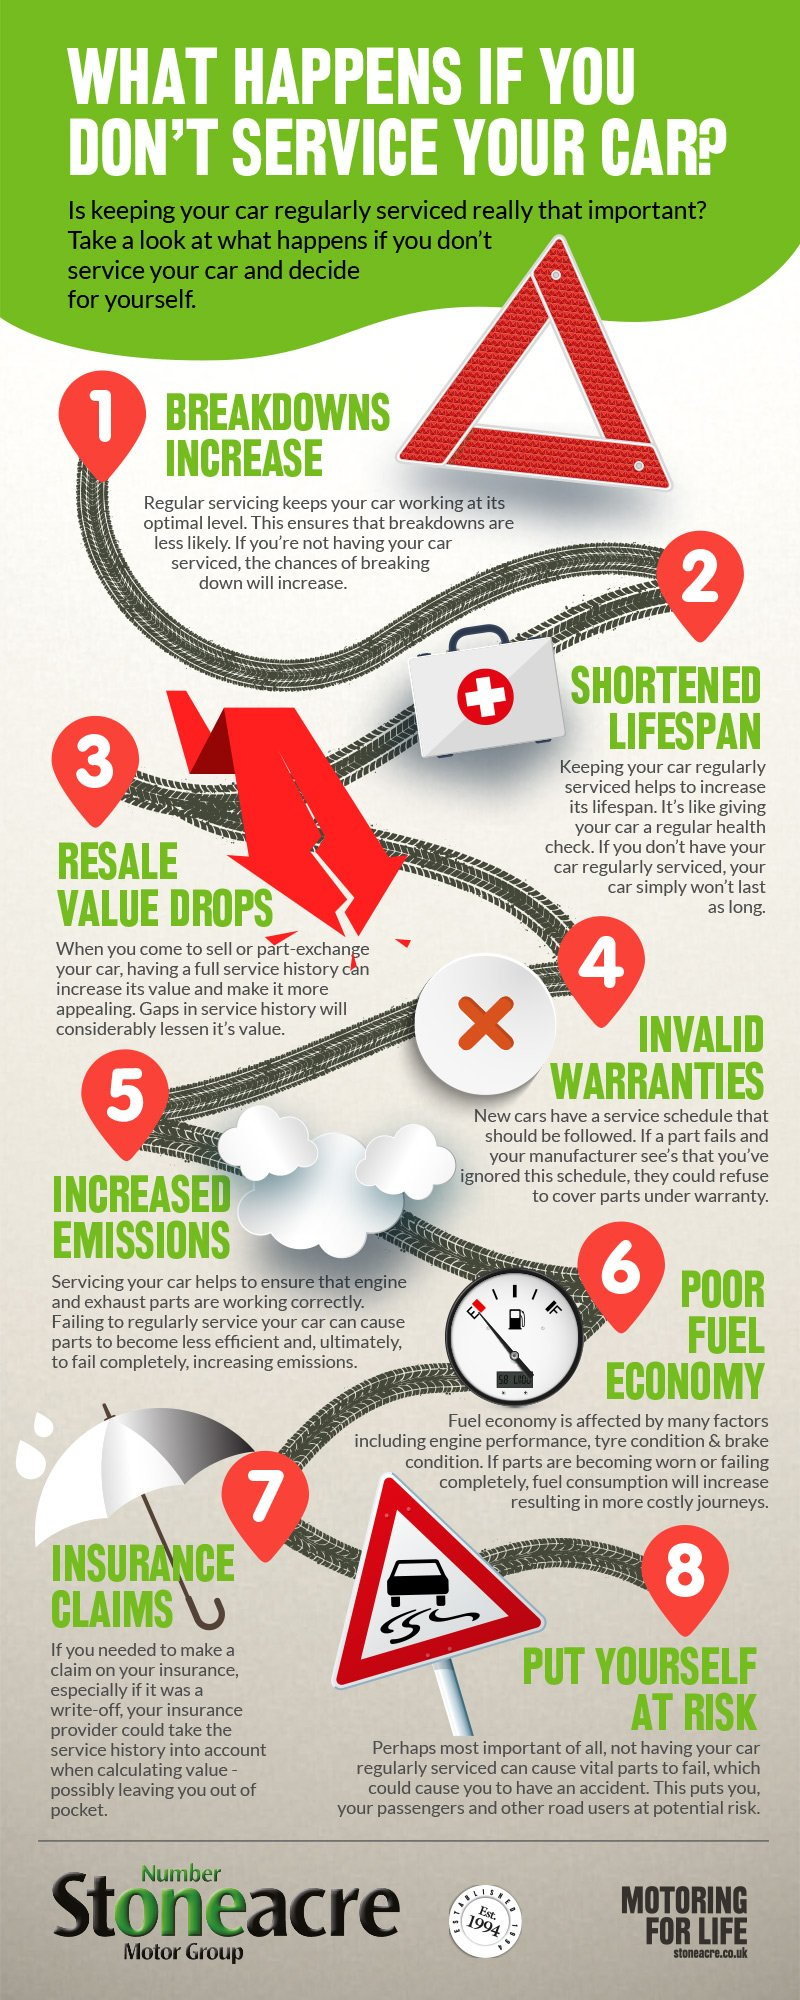 what happens if you don't service your car infographic